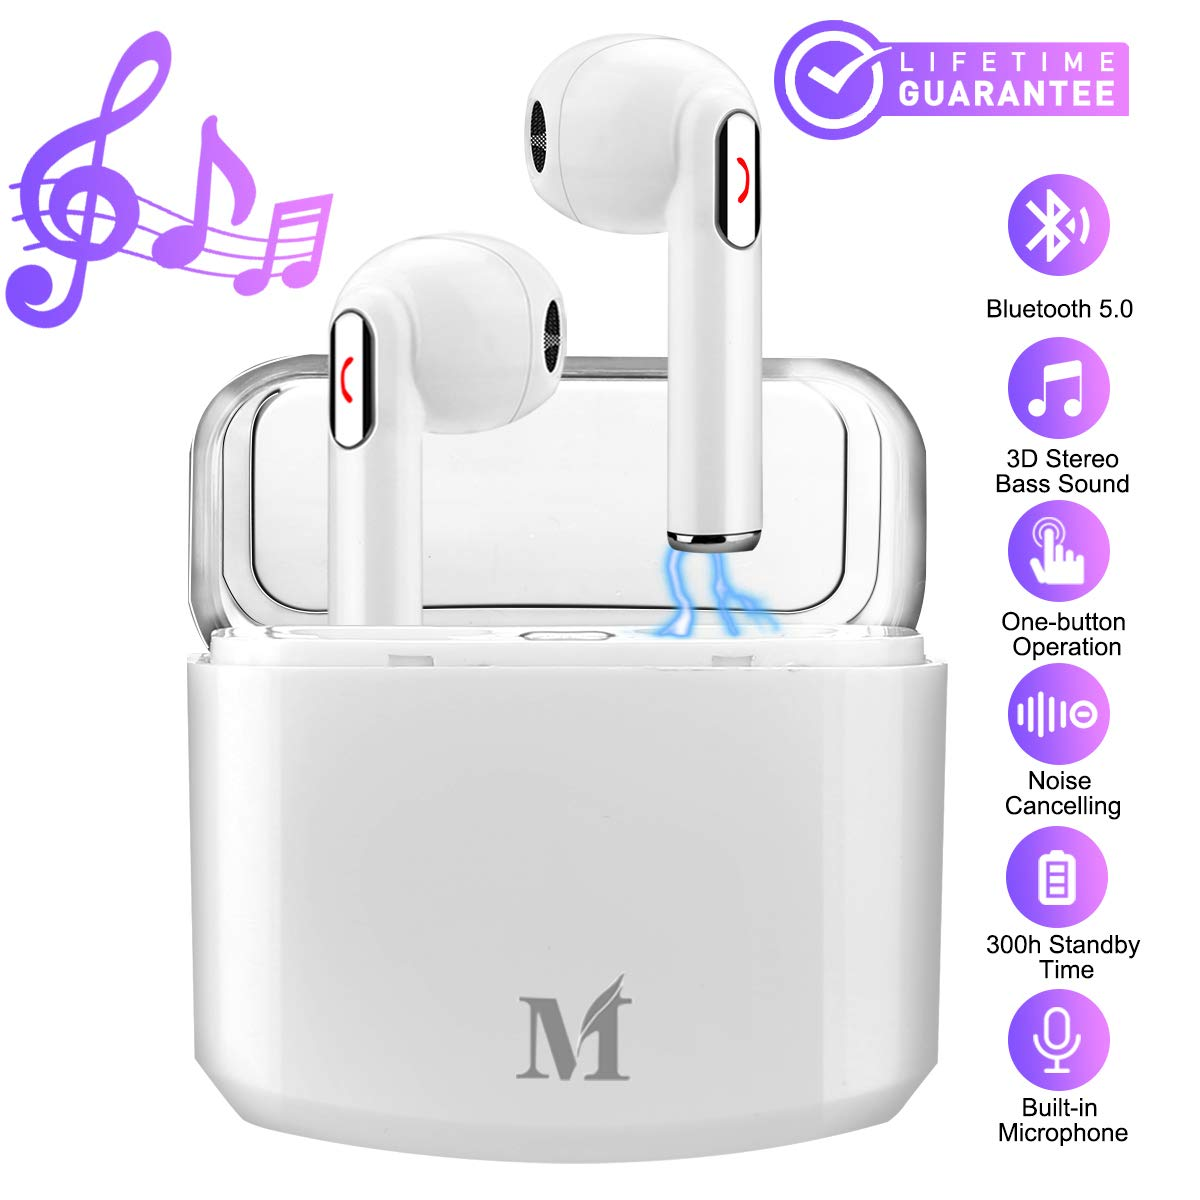 Wireless Earbuds,Bluetooth Earbuds Wireless Earphones Noise Cancelling with Mic Charging Case,Sport Running Mini True Stereo Earbuds Bluetooth Compatible iOS Android Samsung Huawei Phones X 8 7